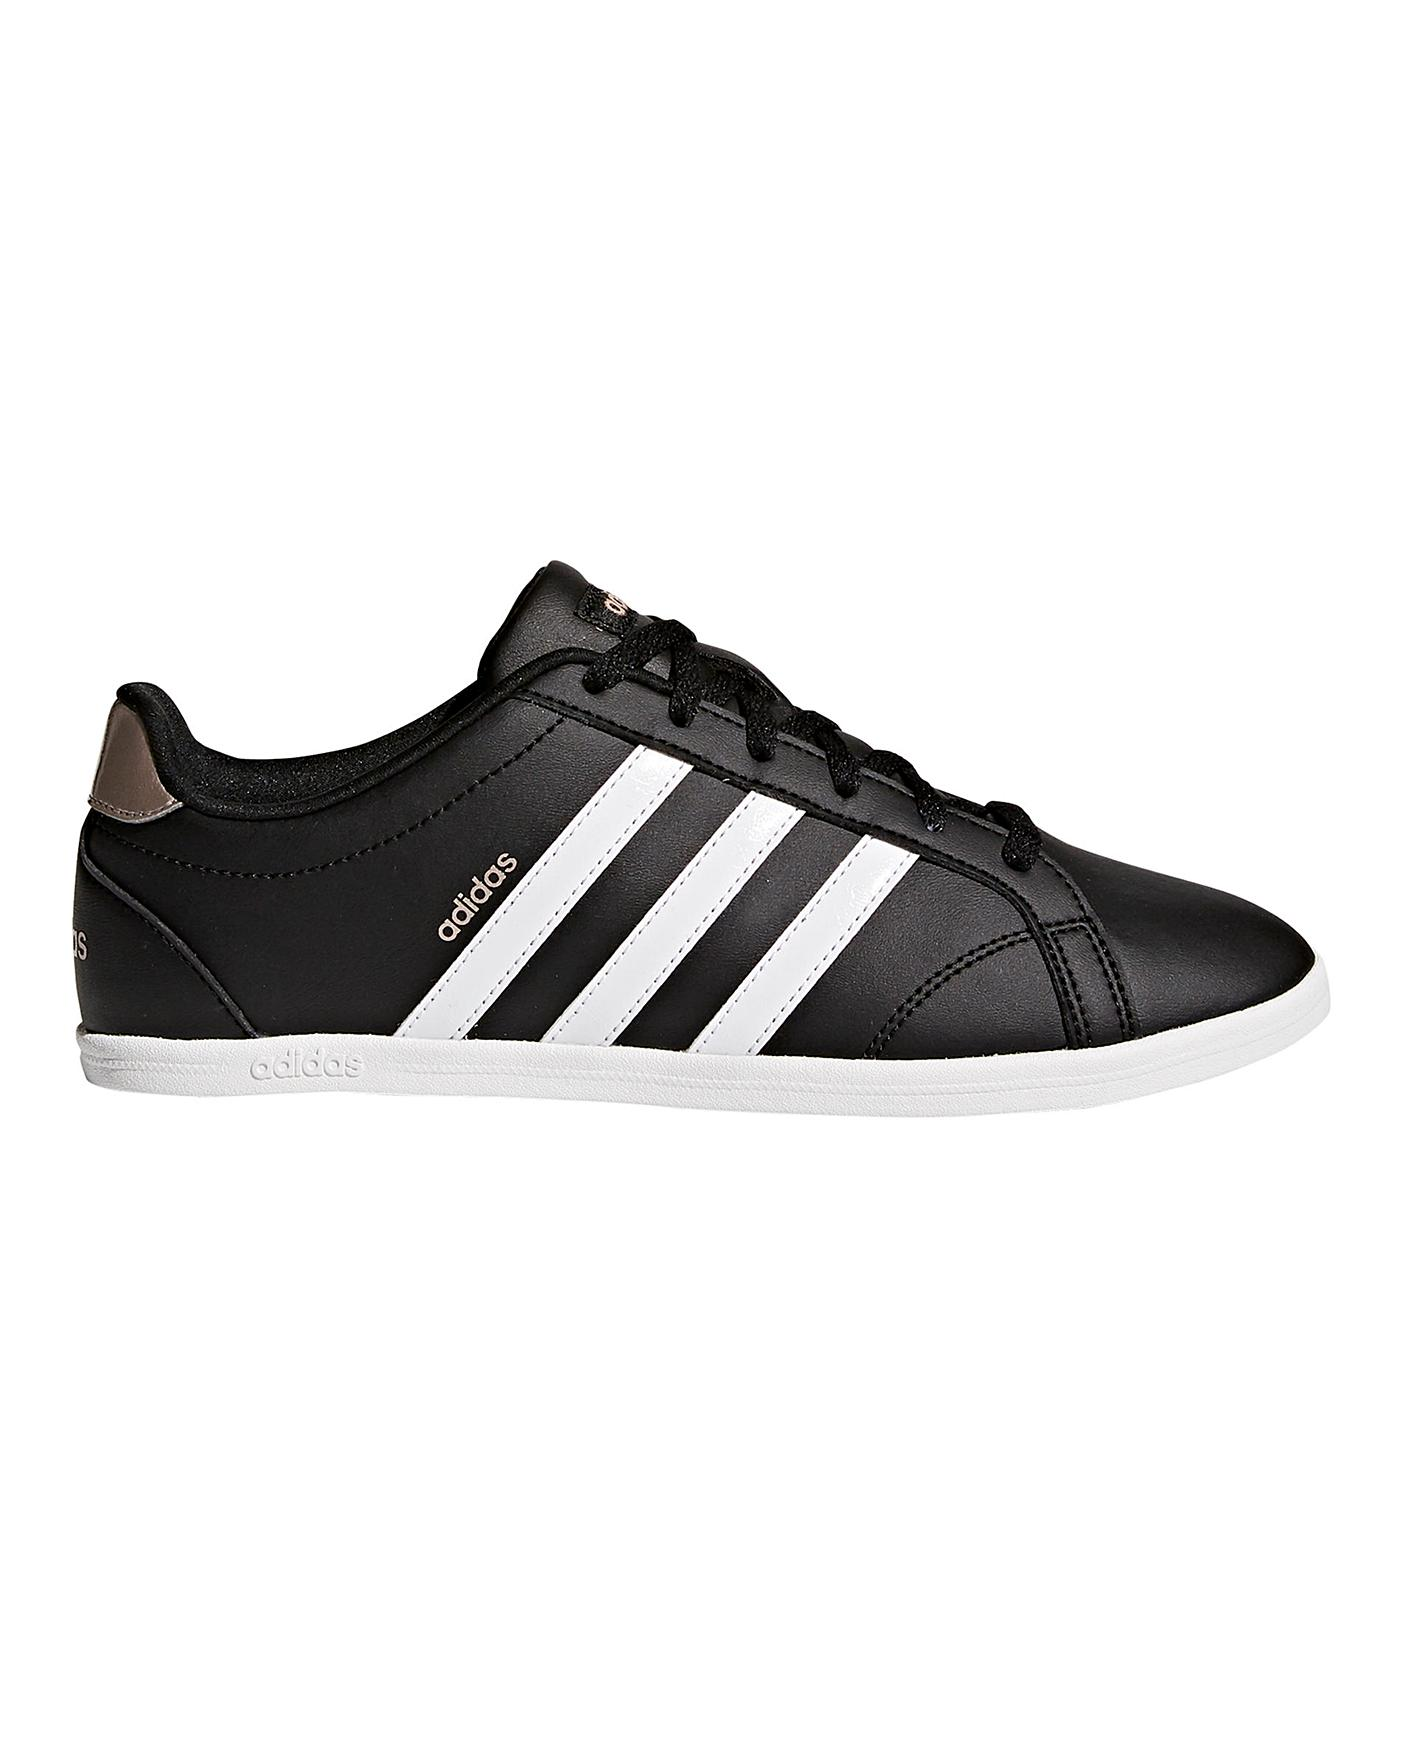 adidas Coneo QT Trainers   Simply Be